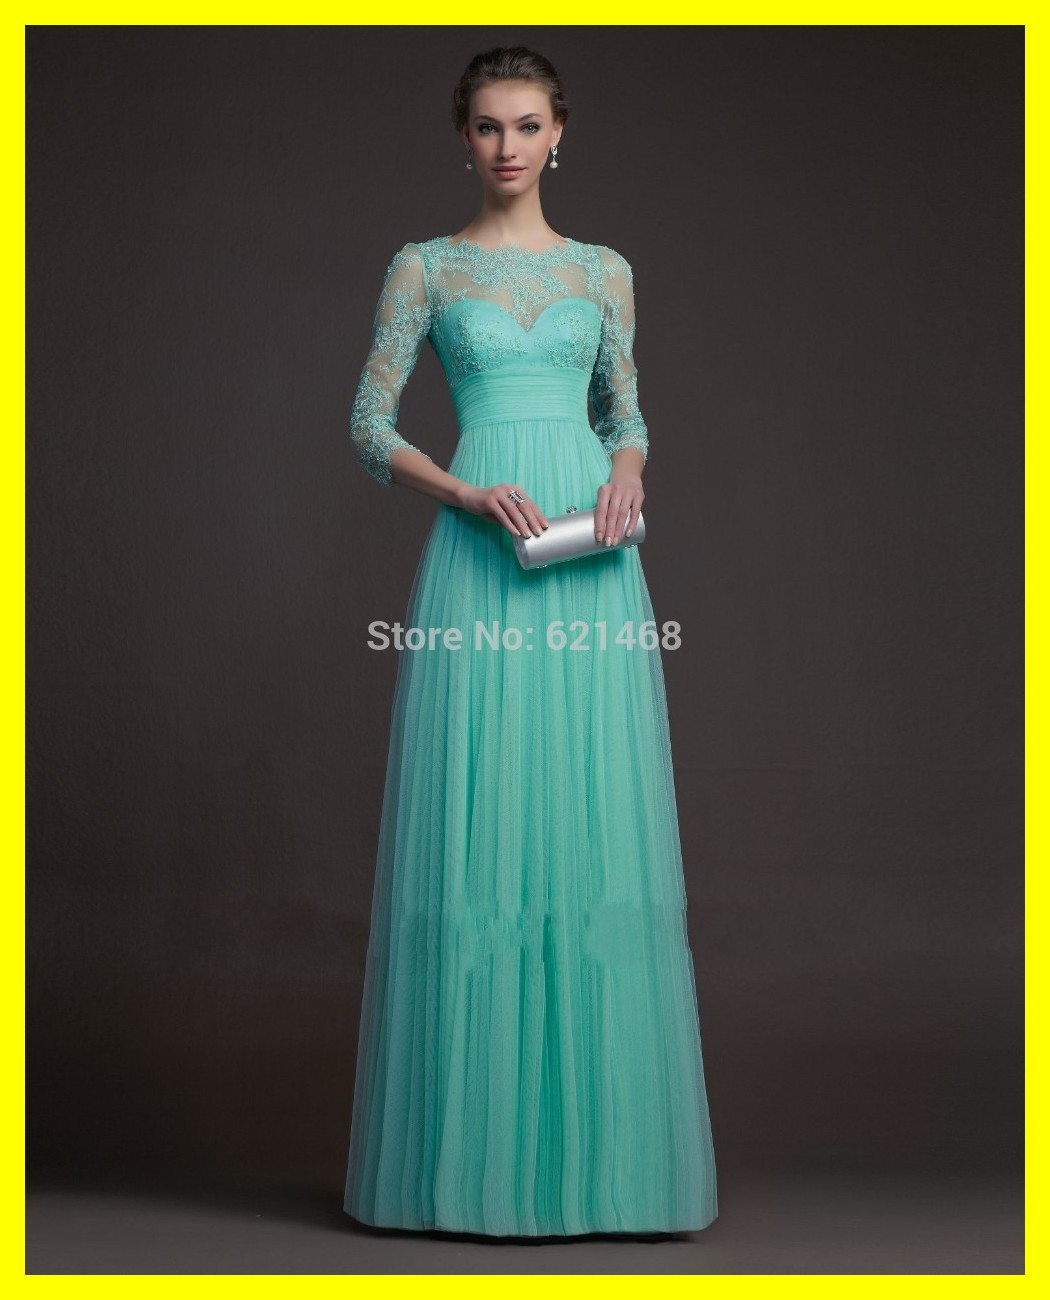 Bridesmaid Dresses Vintage Uk Powder Blue Champagne Colored Mocha Adult High Built In Bra Cap Sleeve Sleeveless E 2015 Wholesale-in Bridesmaid Dresses ...